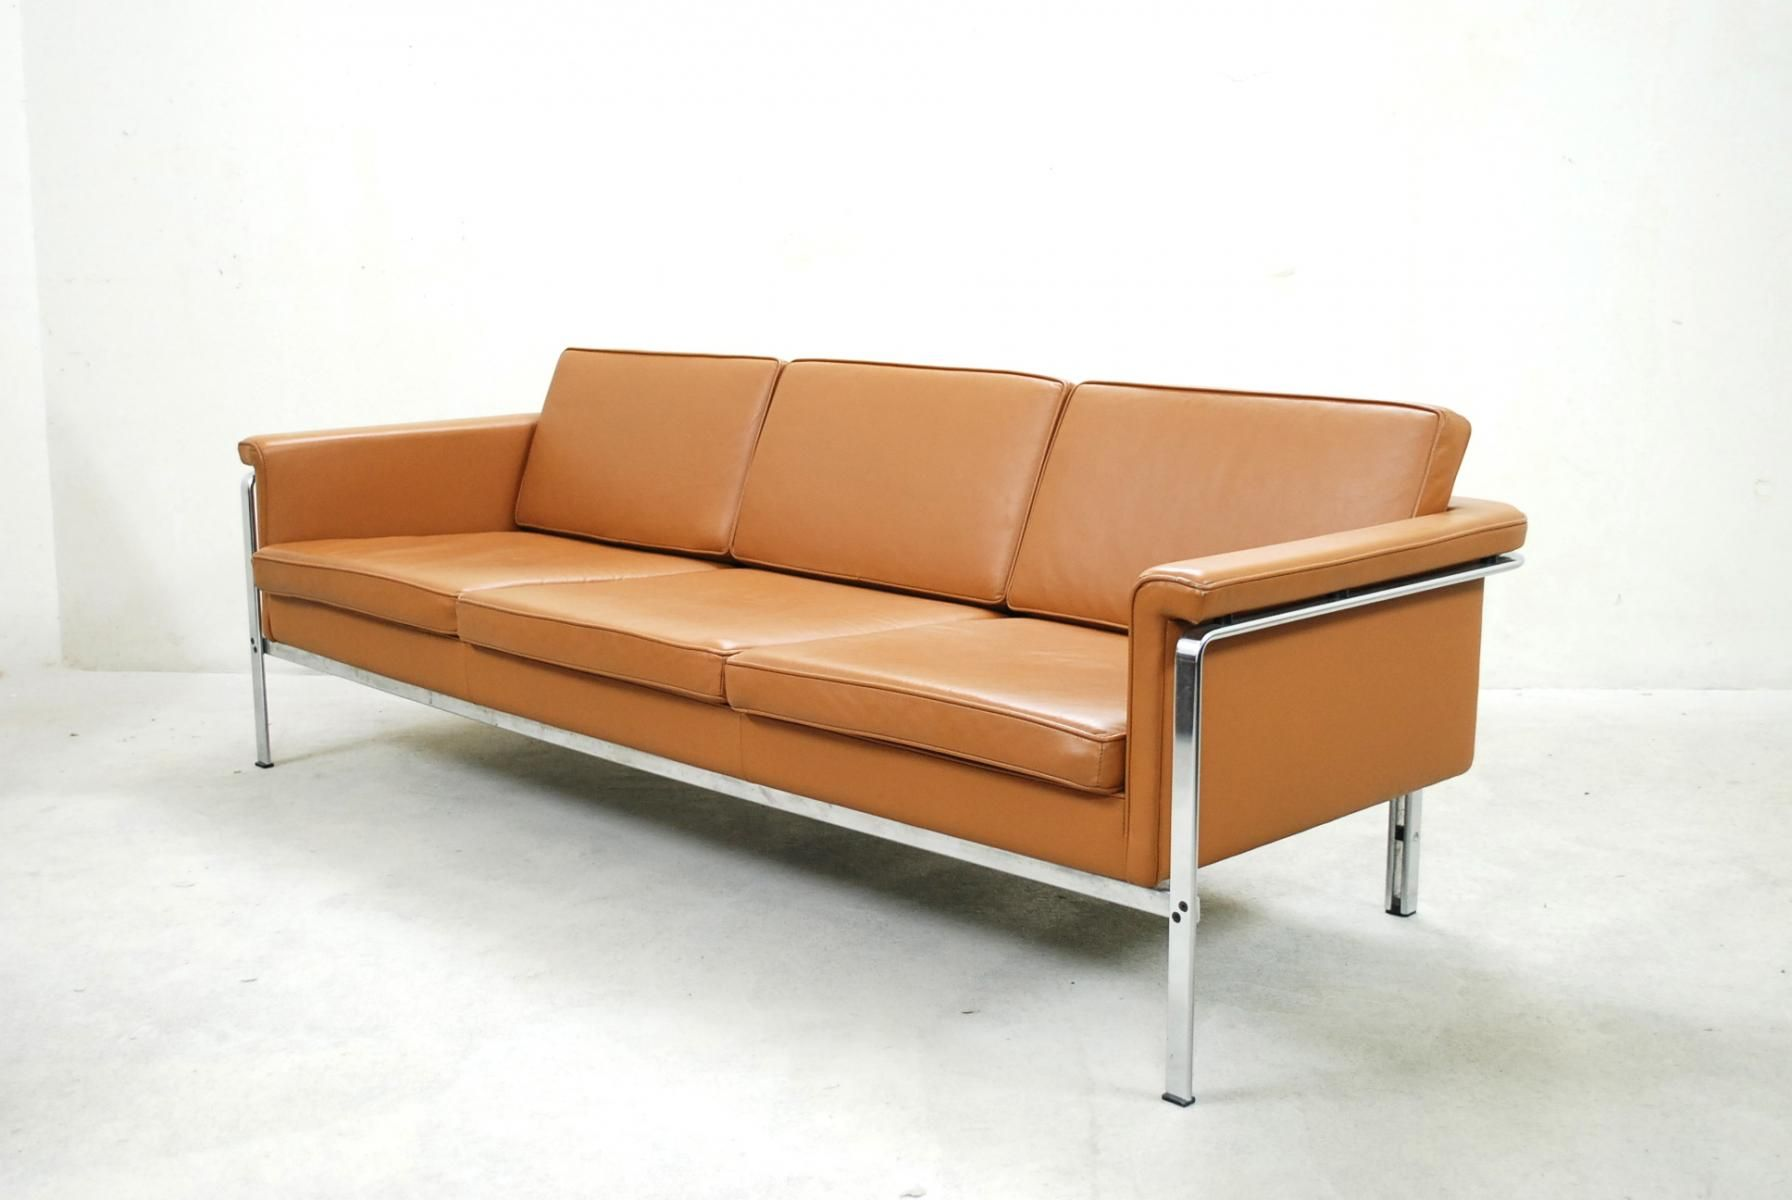 U Shaped Couch with Discount Sale for Living Room